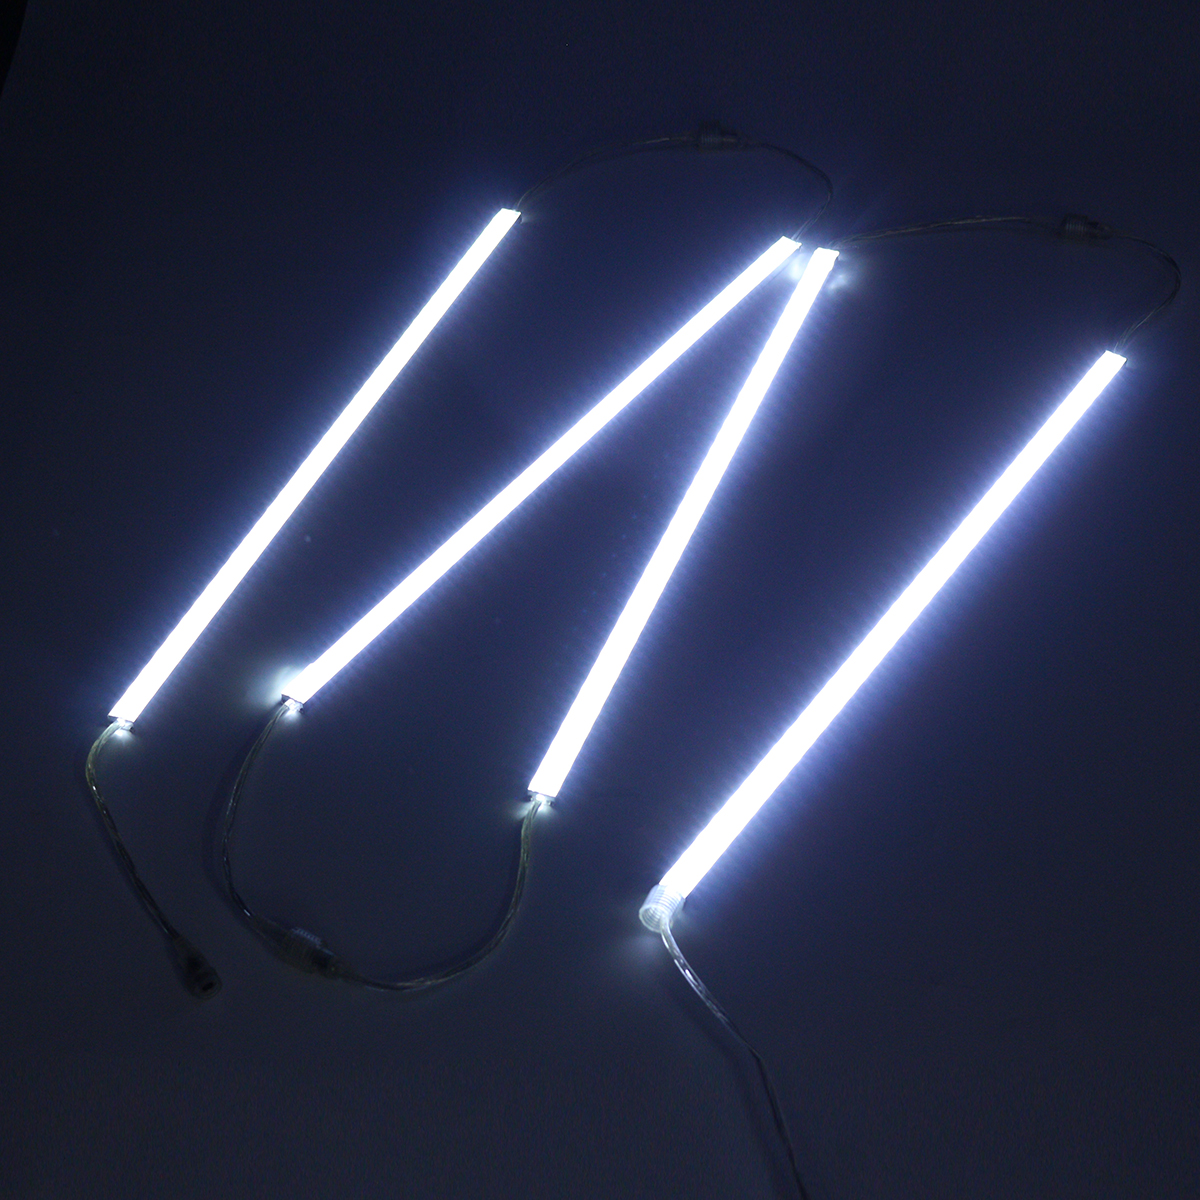 4x50cm Waterproof Cool White SMD5630 LED Rigid Strip Light for Camping Caravan Boat with Clips DC12V